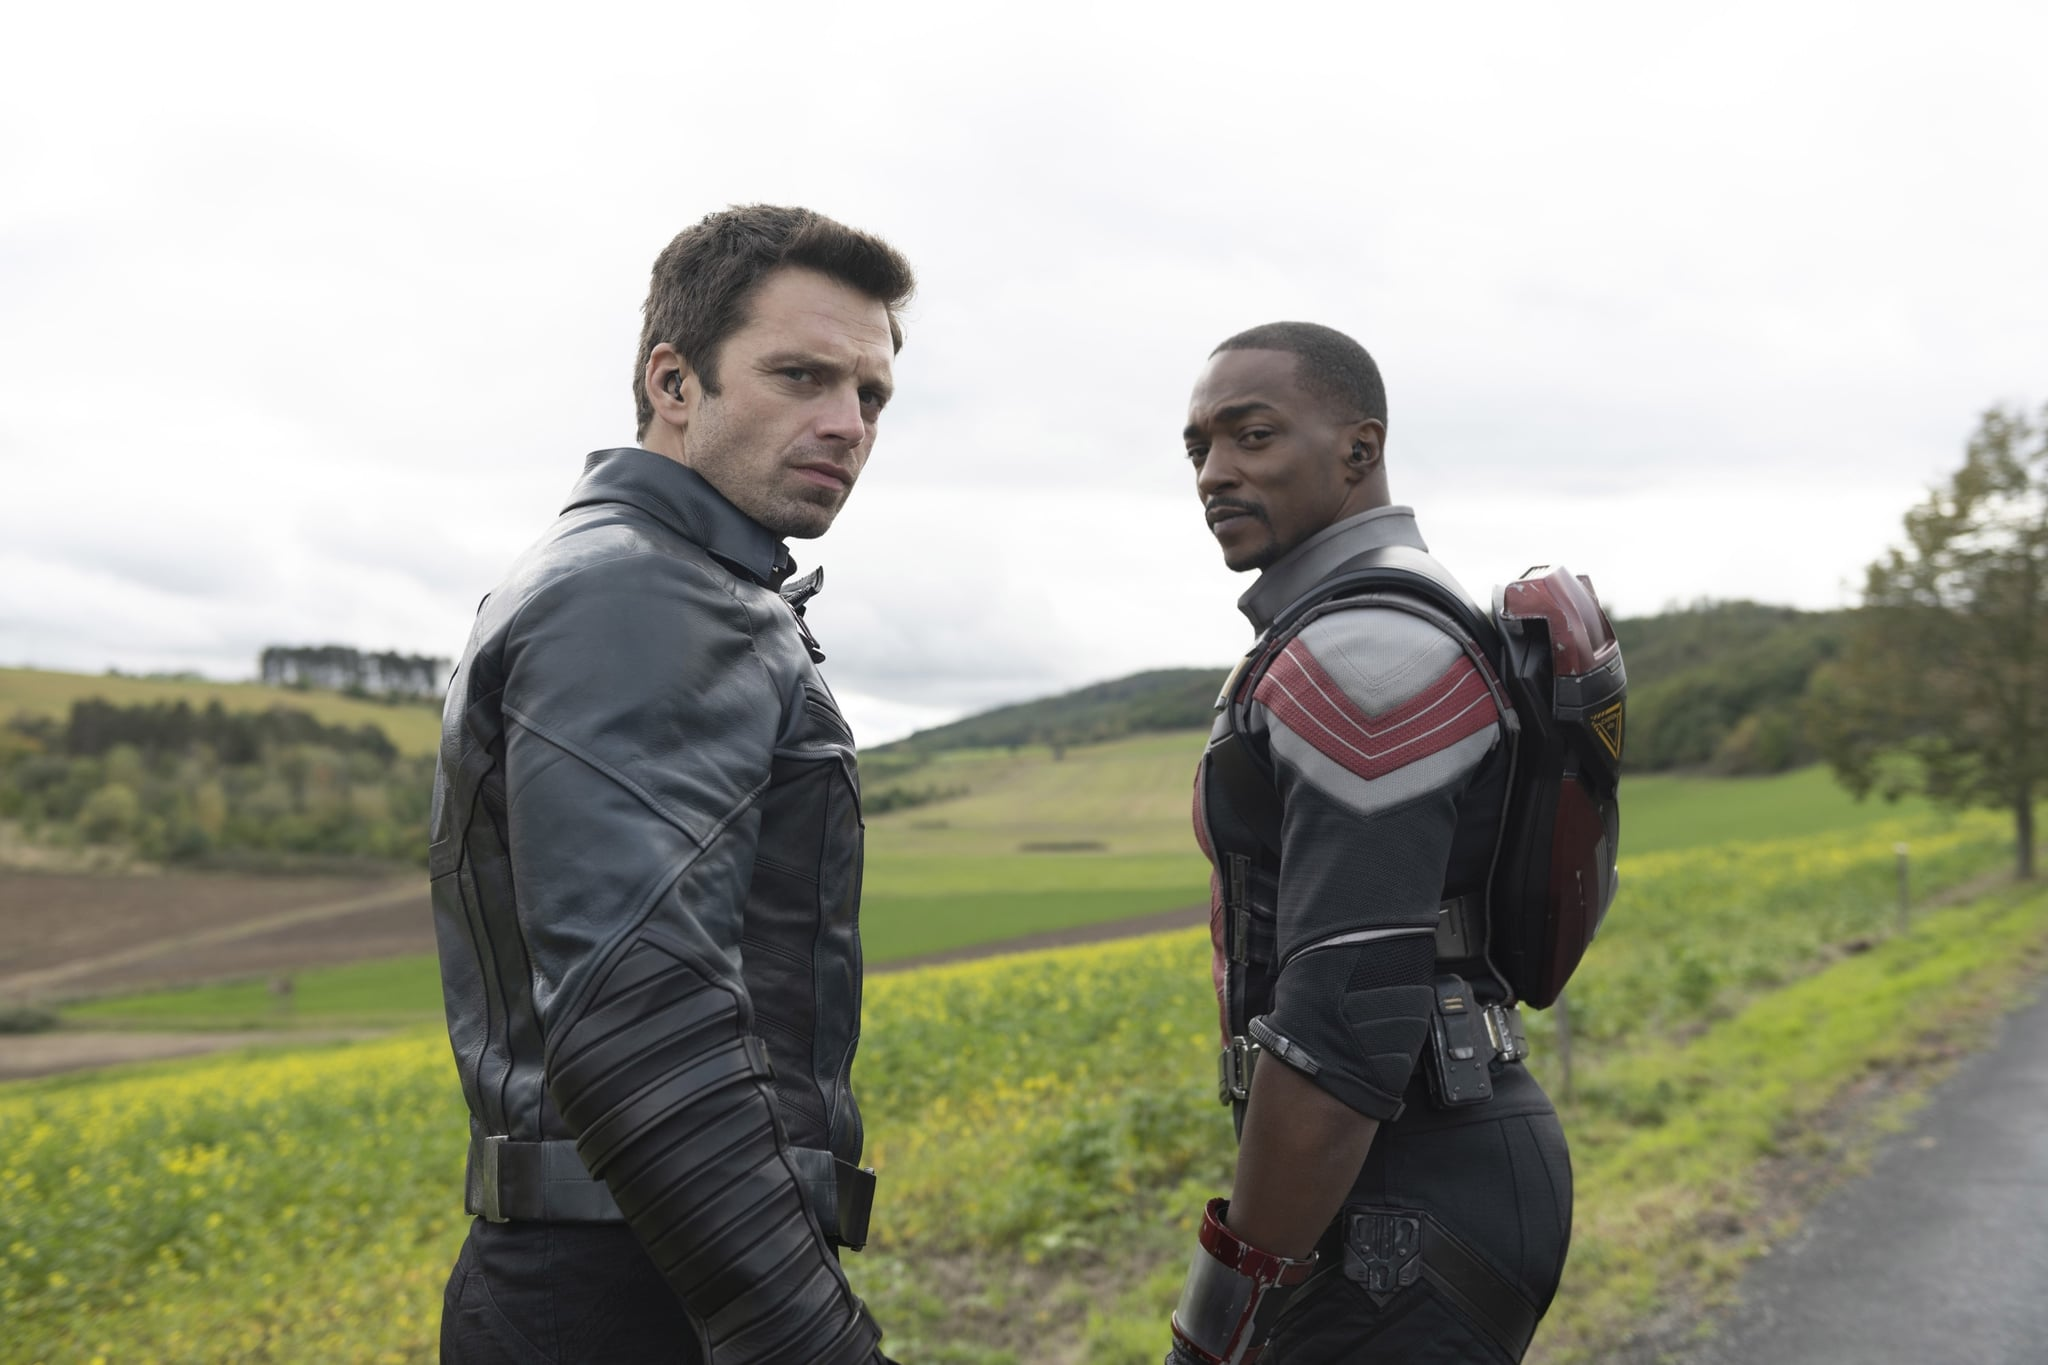 THE FALCON AND THE WINTER SOLDIER, from left: Sebastian Stan as Winter Soldier, Anthony Mackie as Falcon, (Season 1, ep. 102, aired Mar. 26, 2021). photo: Julie Vrabelova / Disney+/Marvel Studios / Courtesy Everett Collection